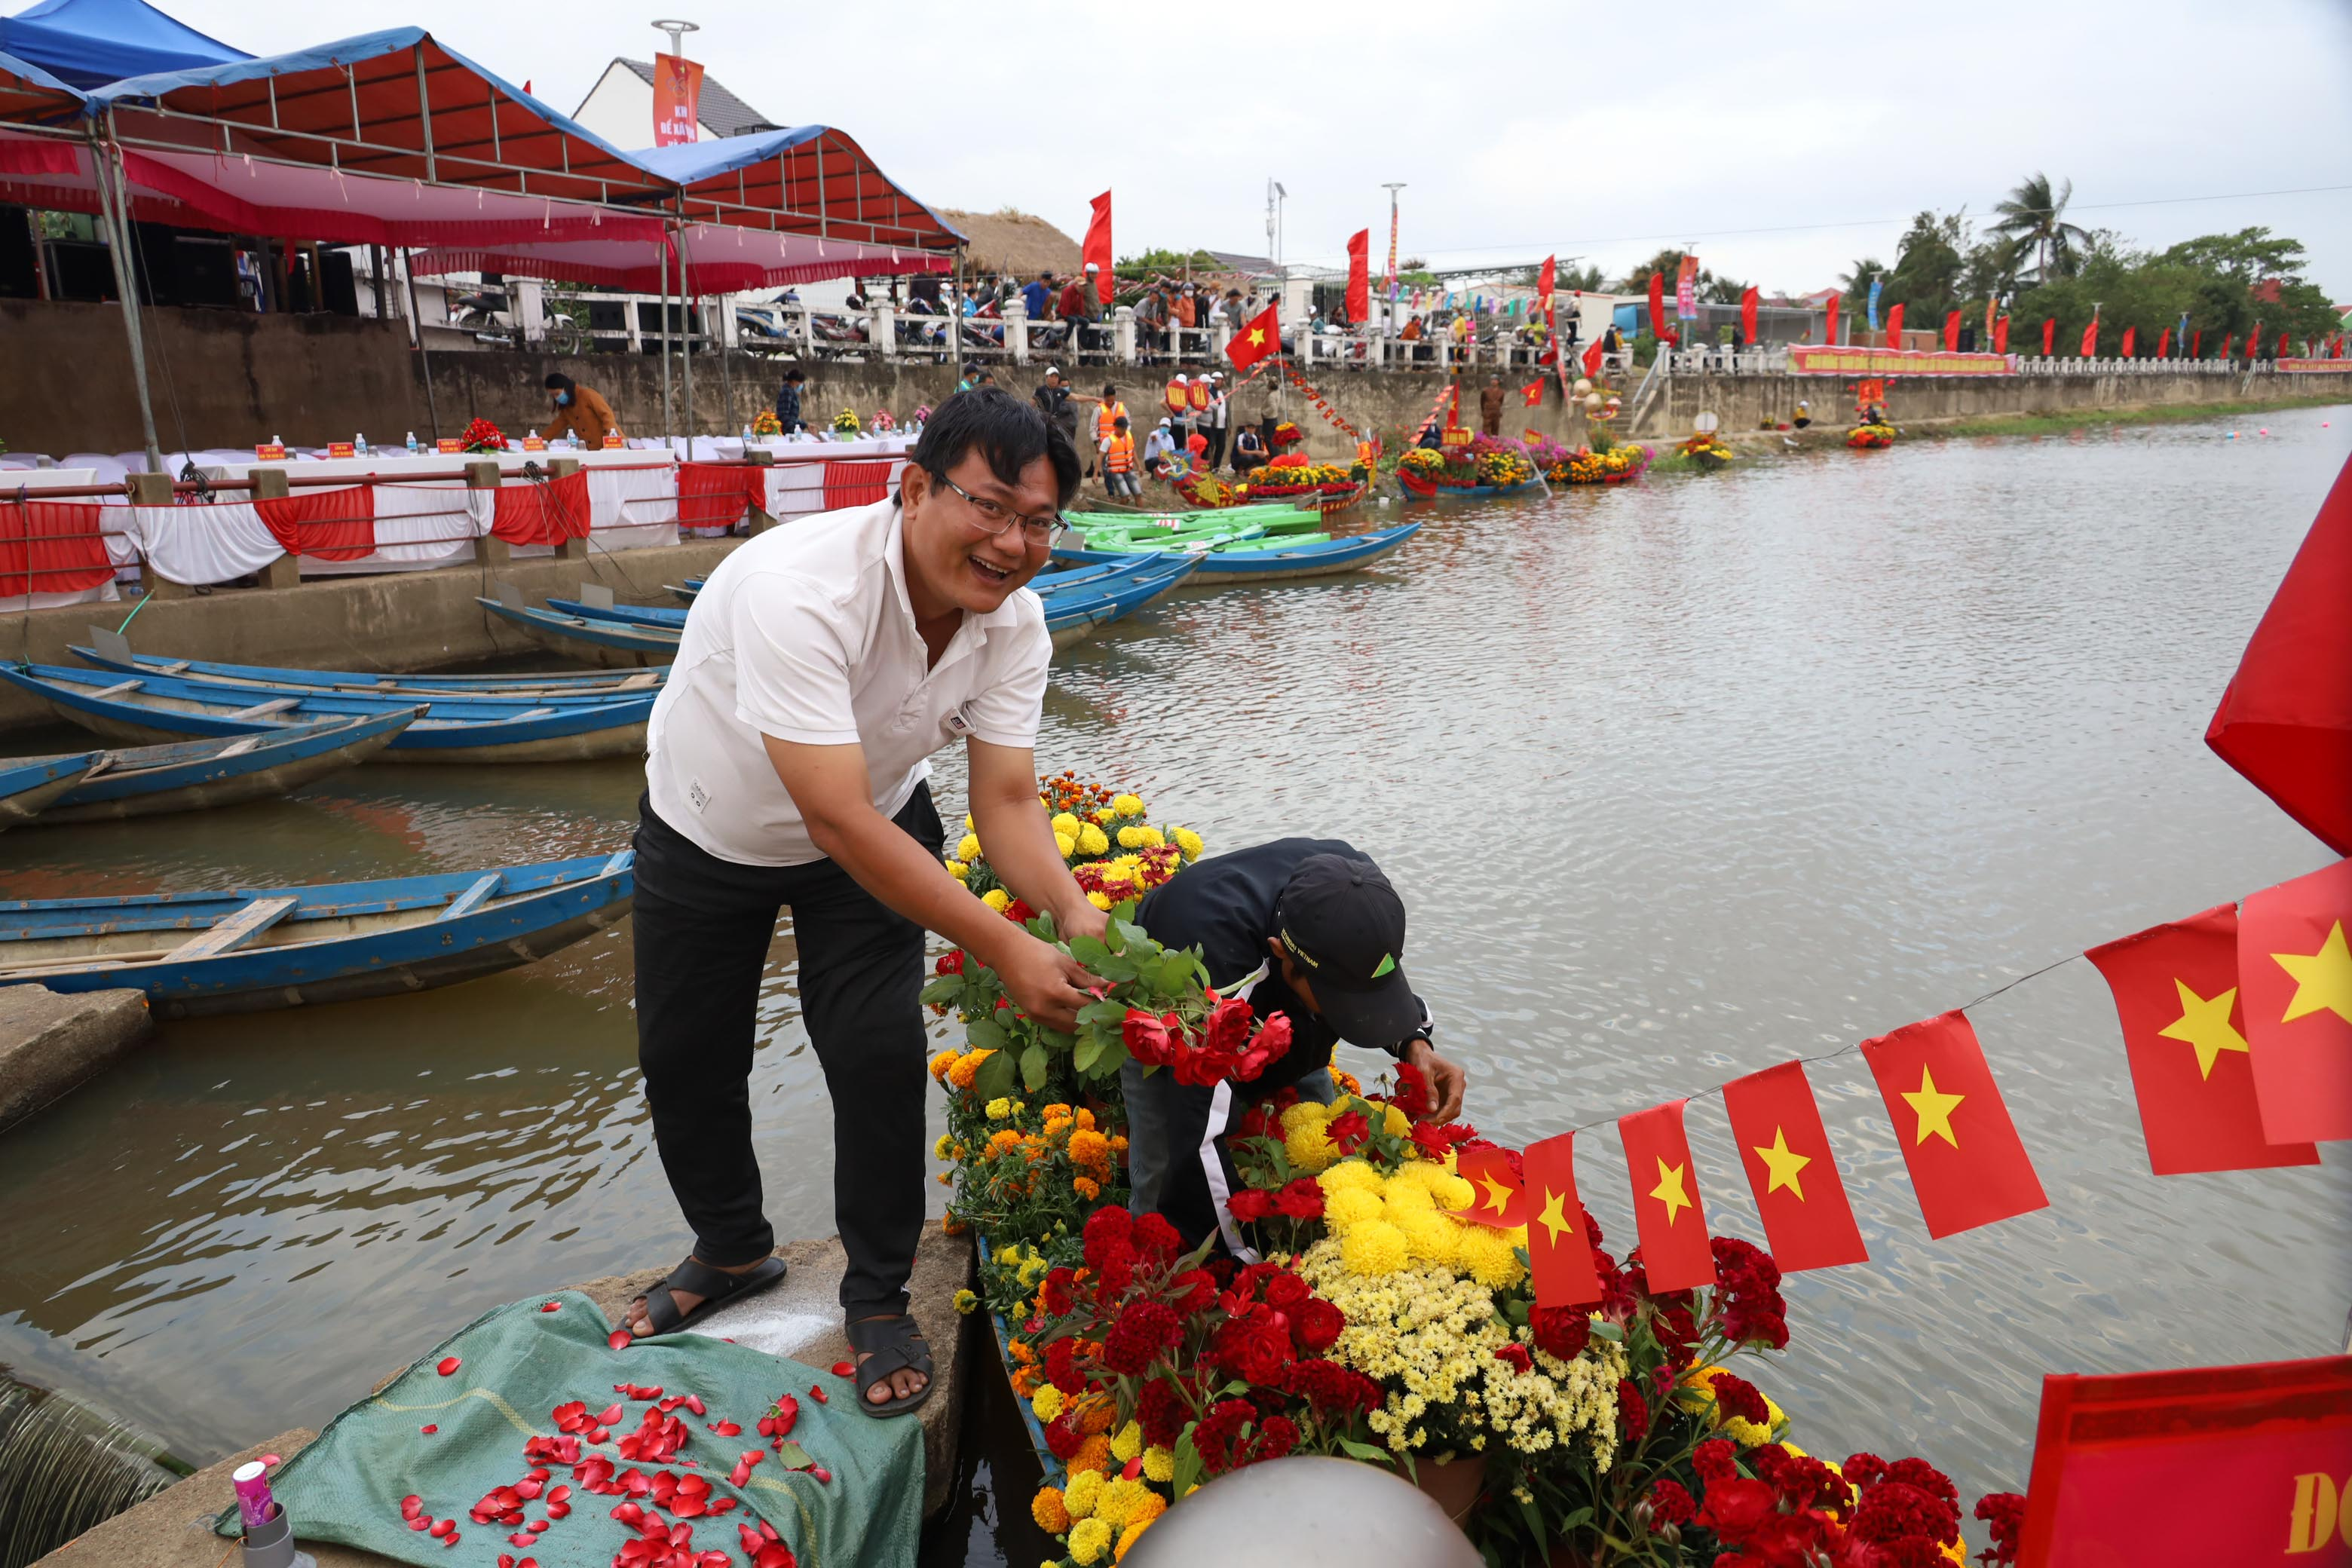 Decorating boats with flowers